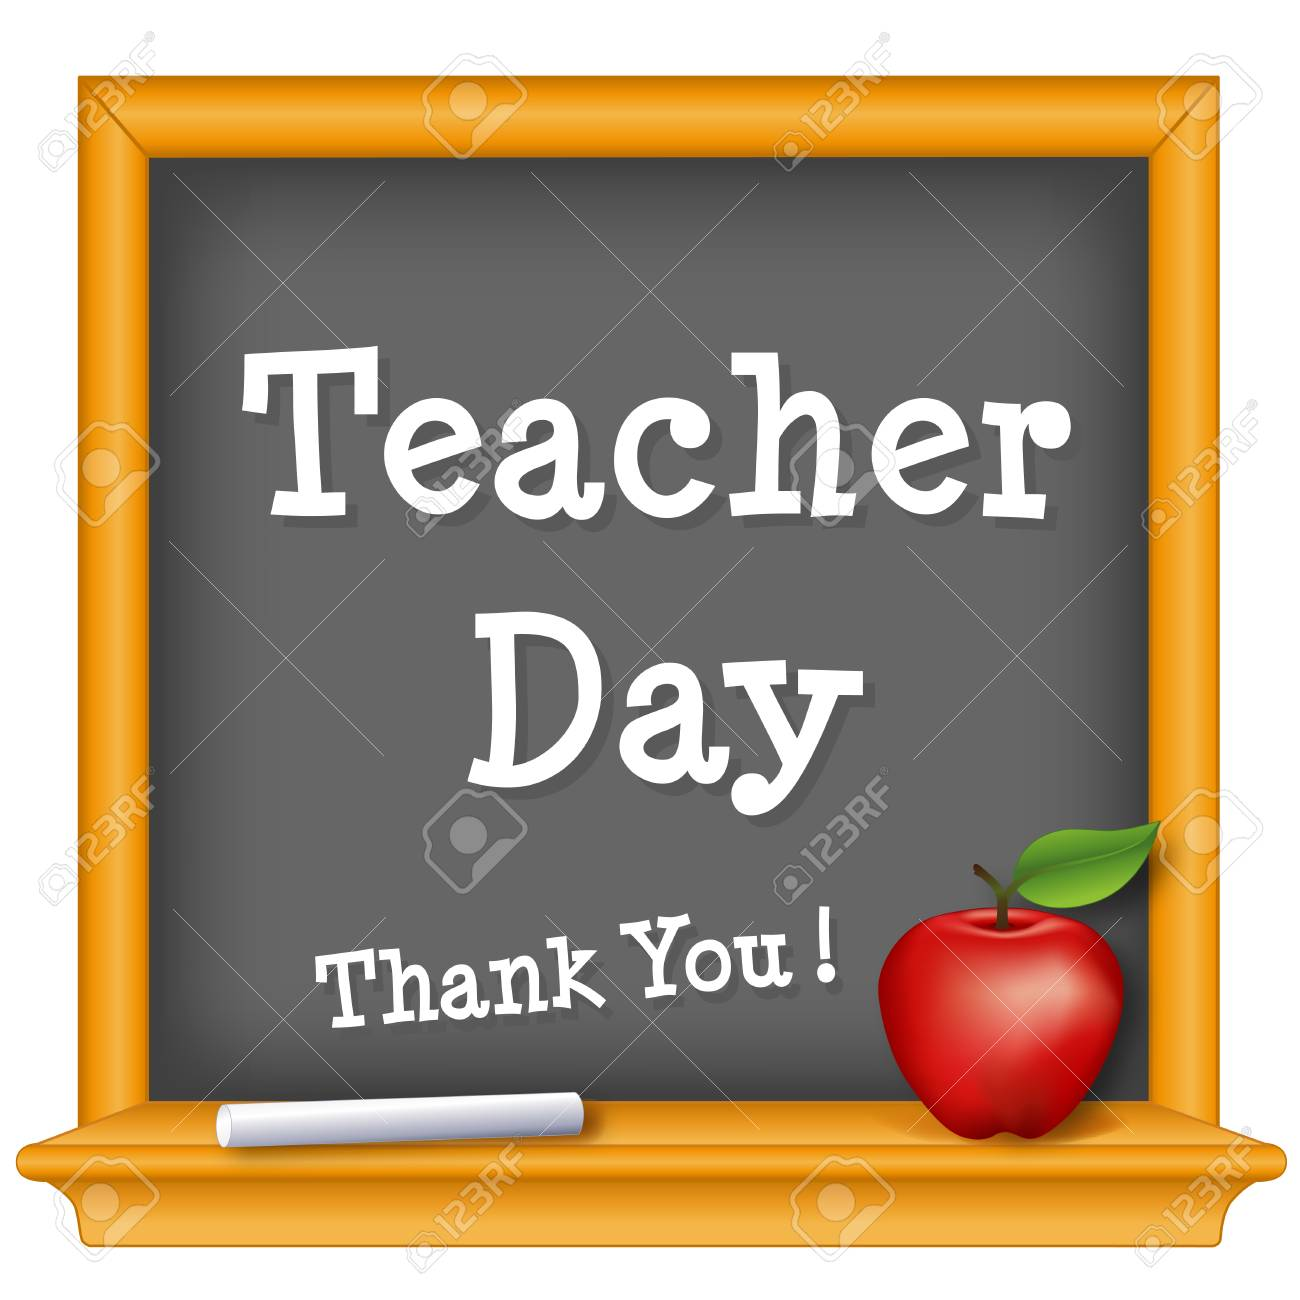 Teacher Day, national holiday on Tuesday of first full week of May, text on wood frame chalkboard, thank you with a big red apple for the teacher. - 121718512